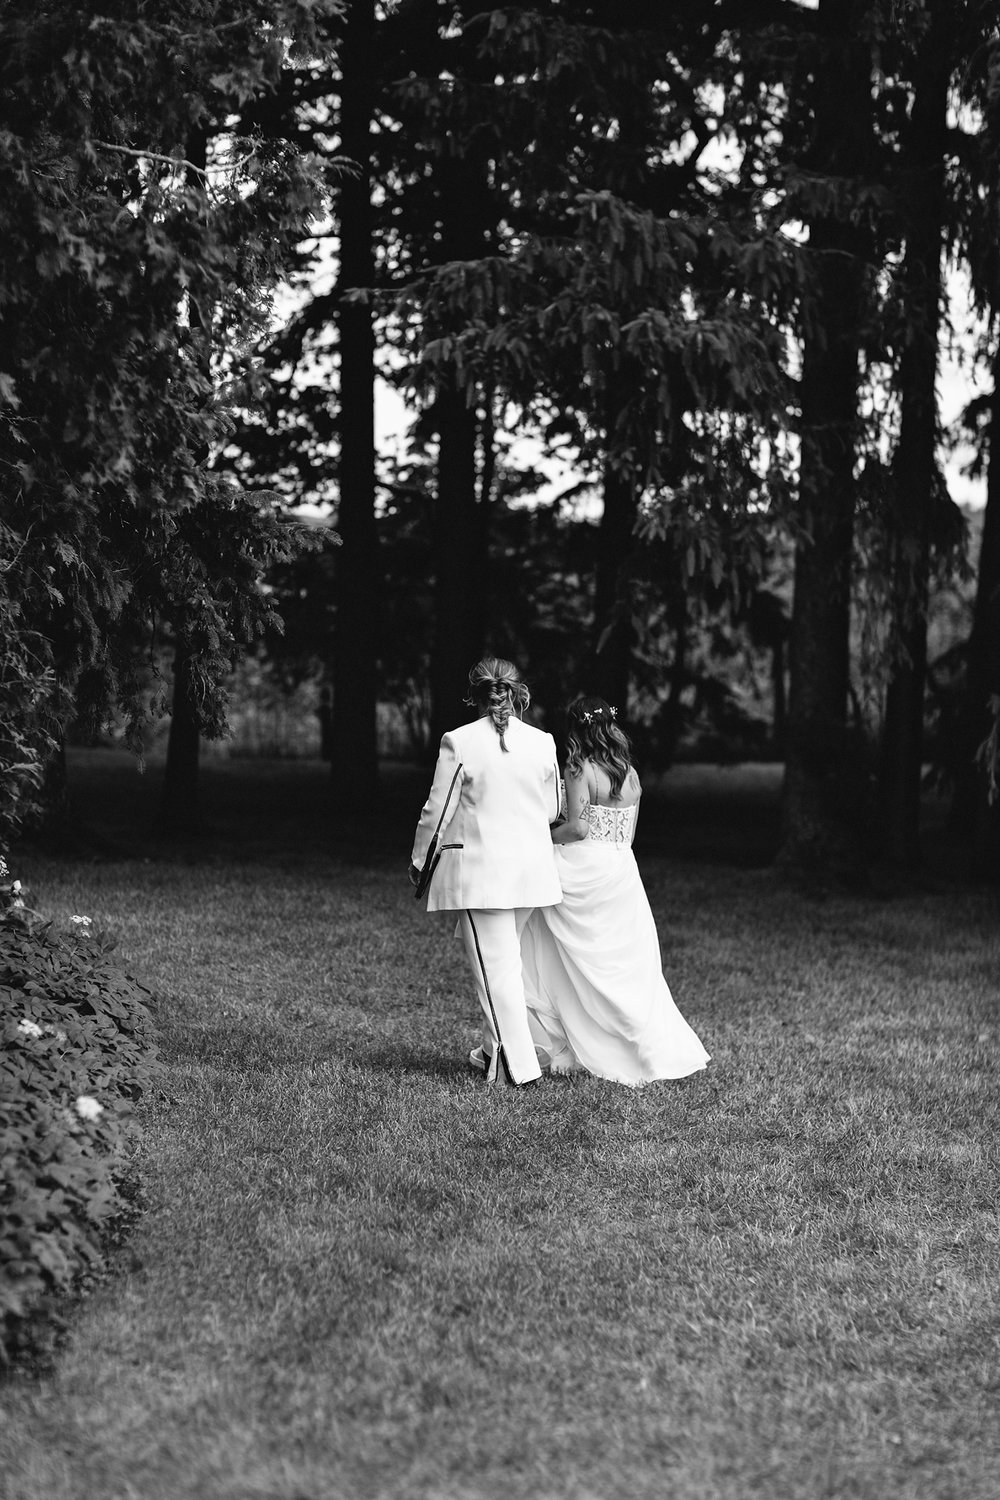 cambium-farms-wedding-ryanne-hollies-photography-gay-wedding-farm-wedding-inspiriration-green-wedding-shoes-couples-portraits-rustic-barn-vintage-trendy-badass-couple-gay-wedding-walking-away-bw.jpg